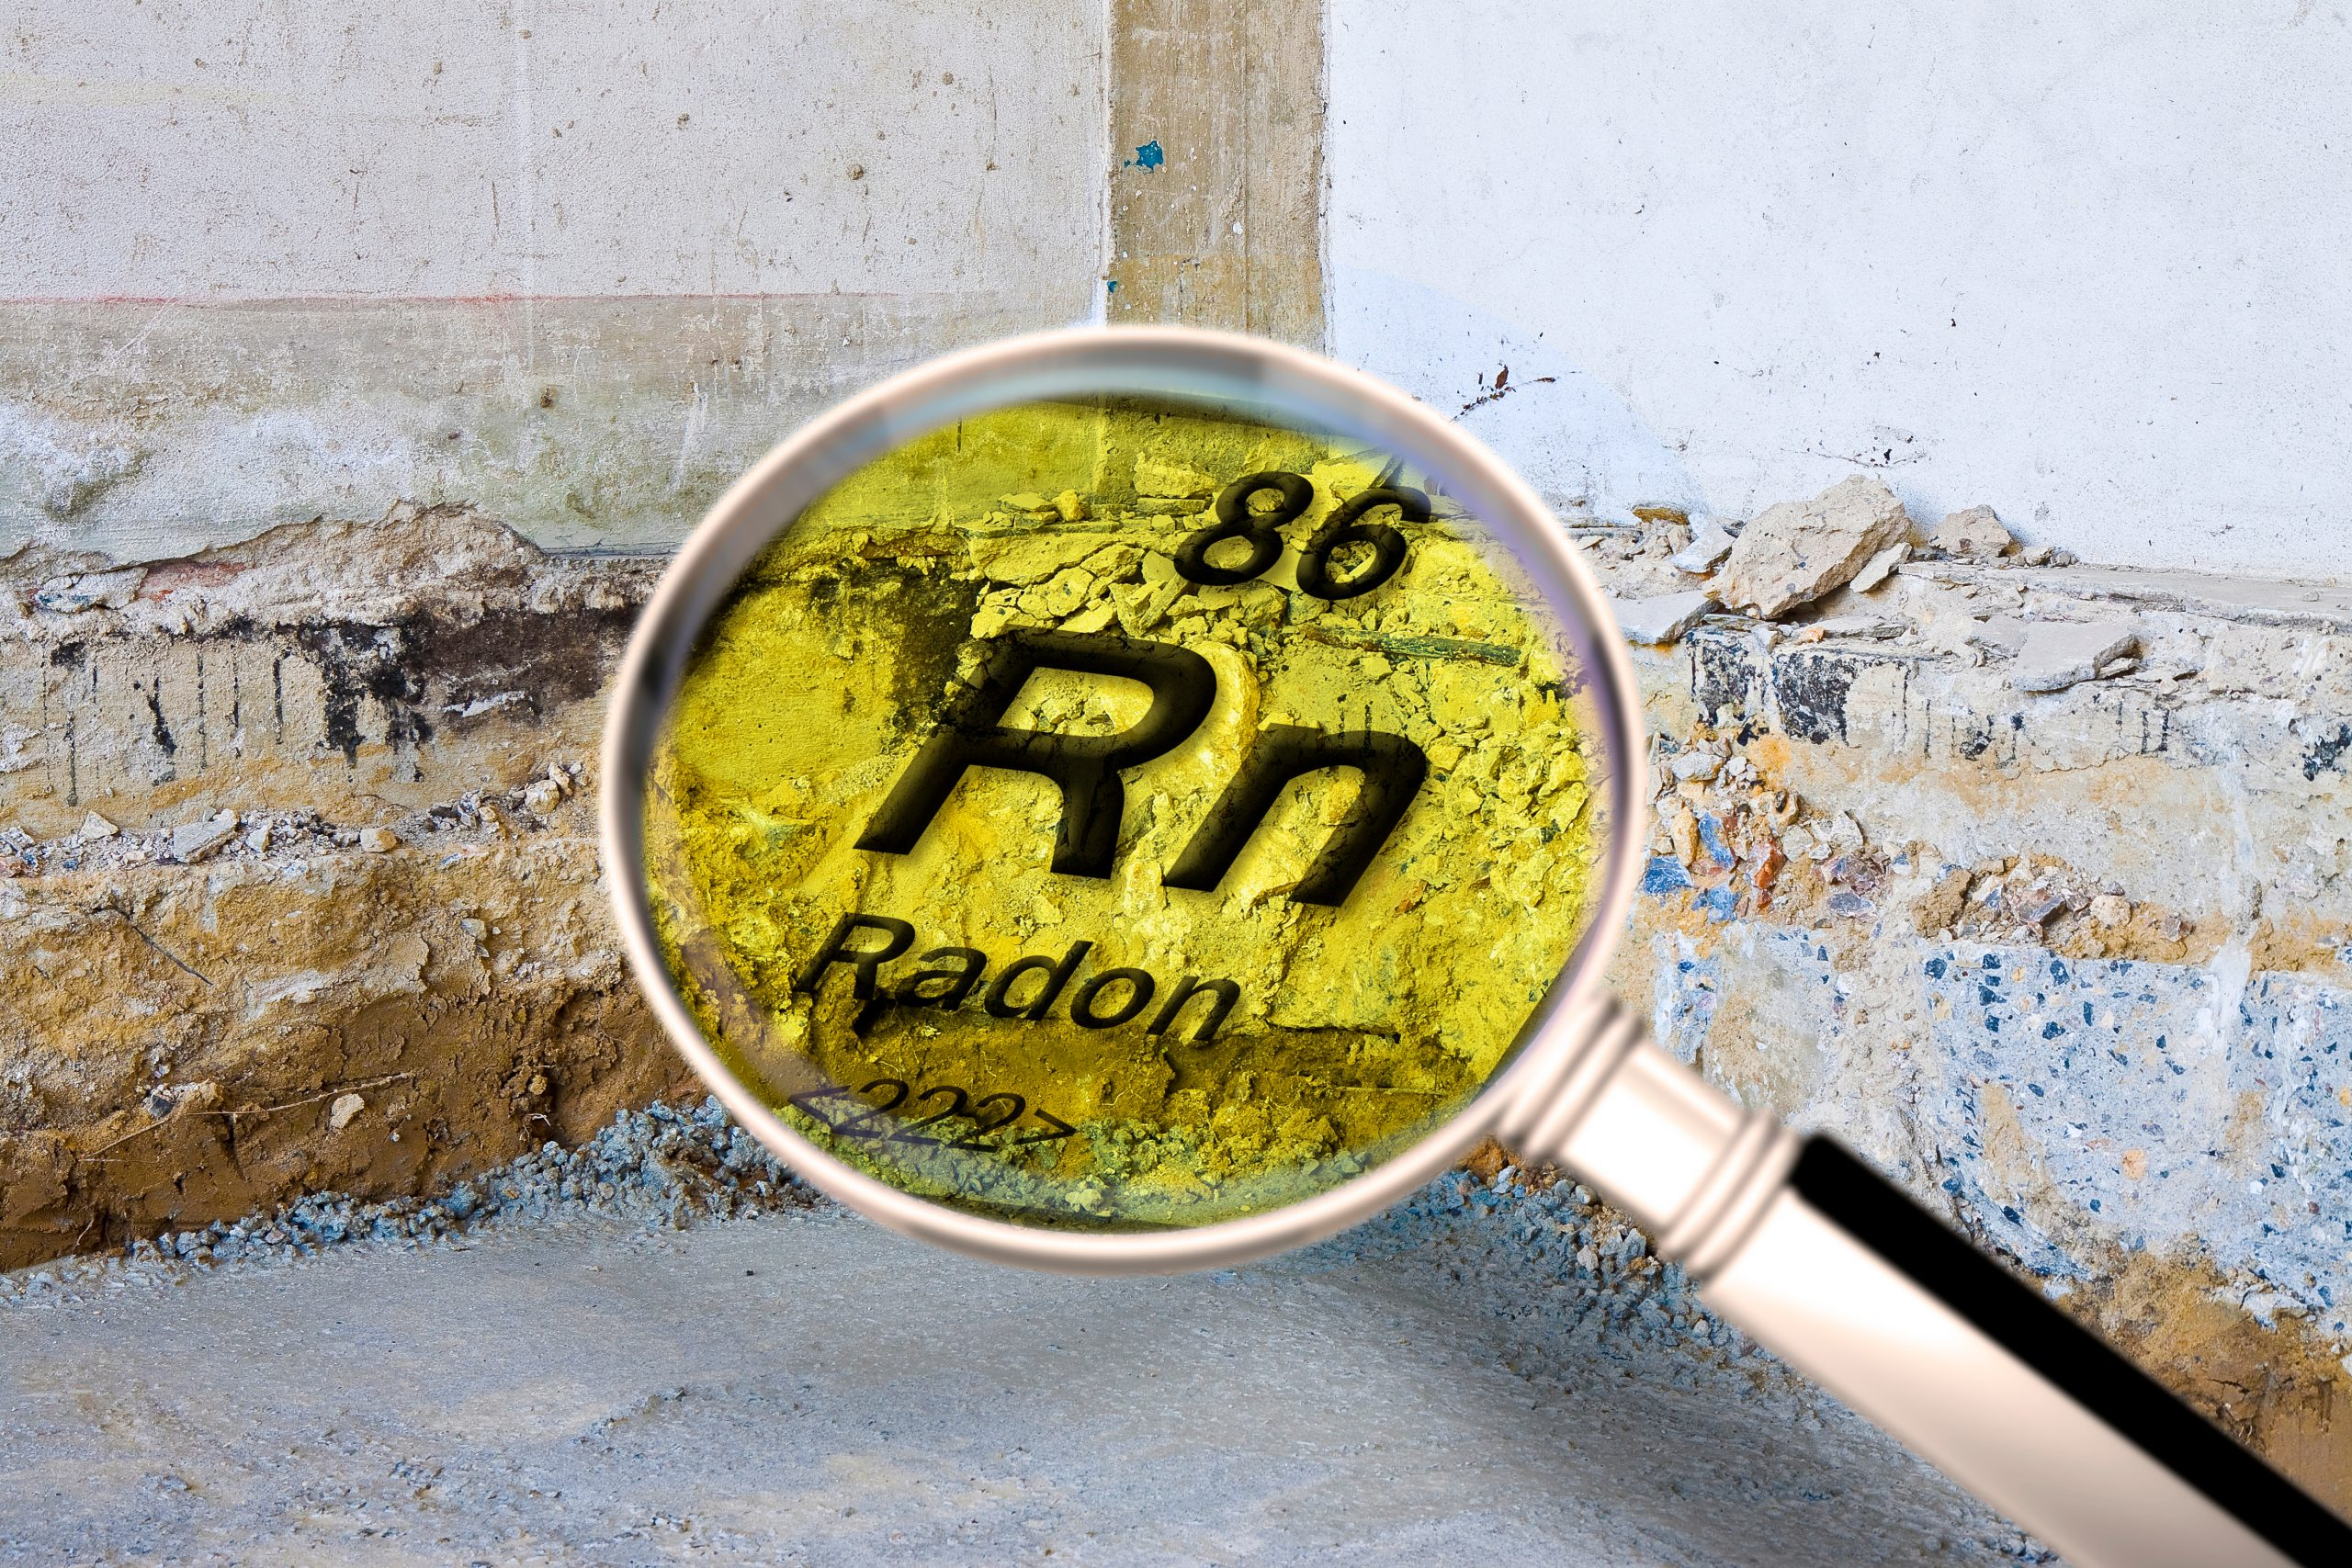 Radon gas can be found in homes in BC and can be hazardous in large amounts